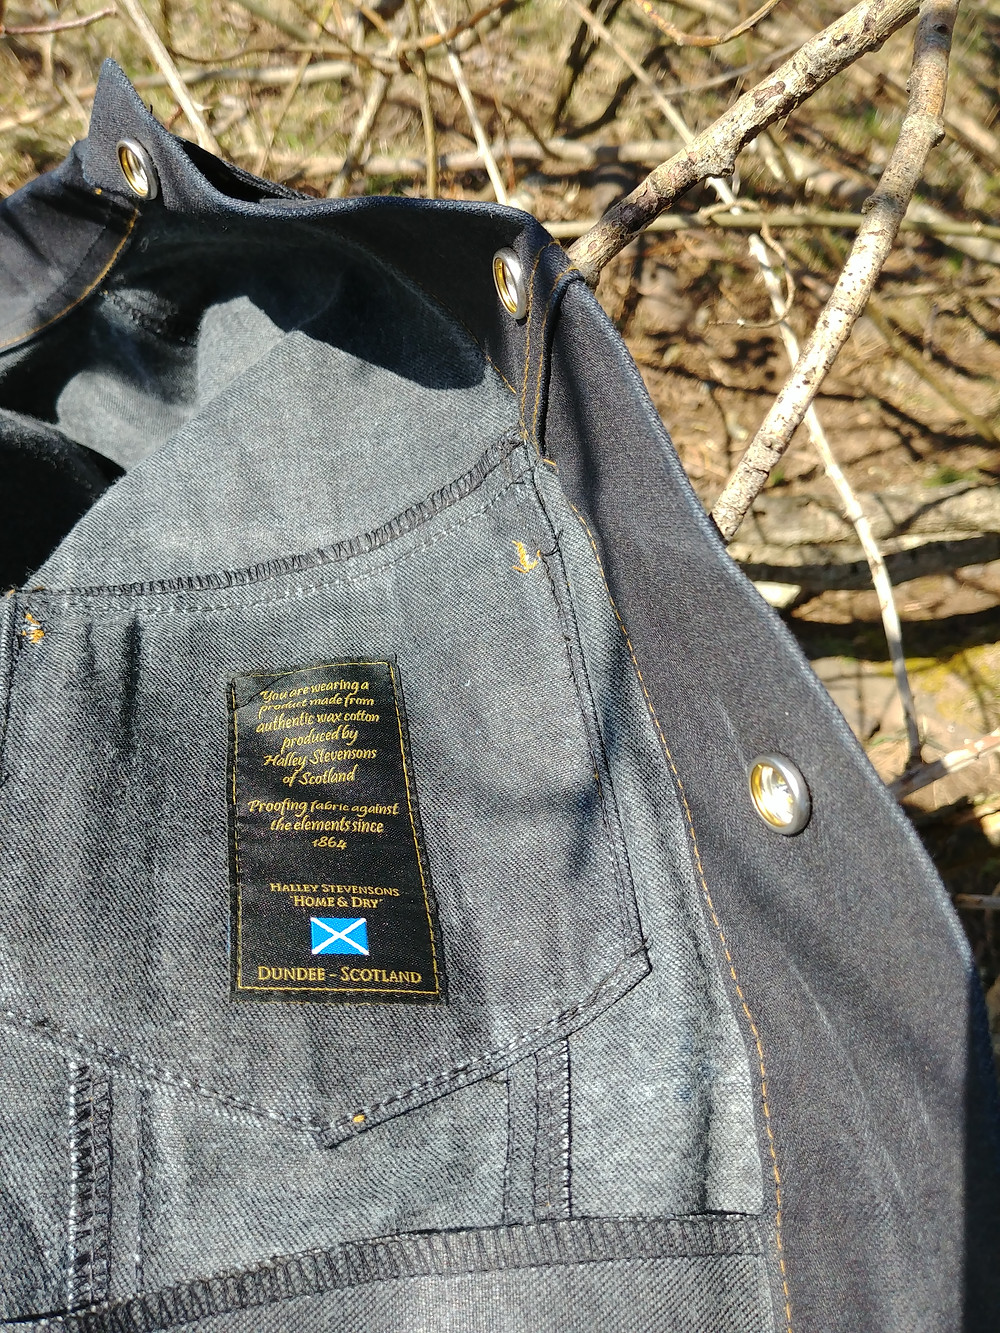 A waxed denim jacket made in Canada by Raised By Wolves. Halley Stevensons of Scotland. Vegan, ethical, and better than faux leather.